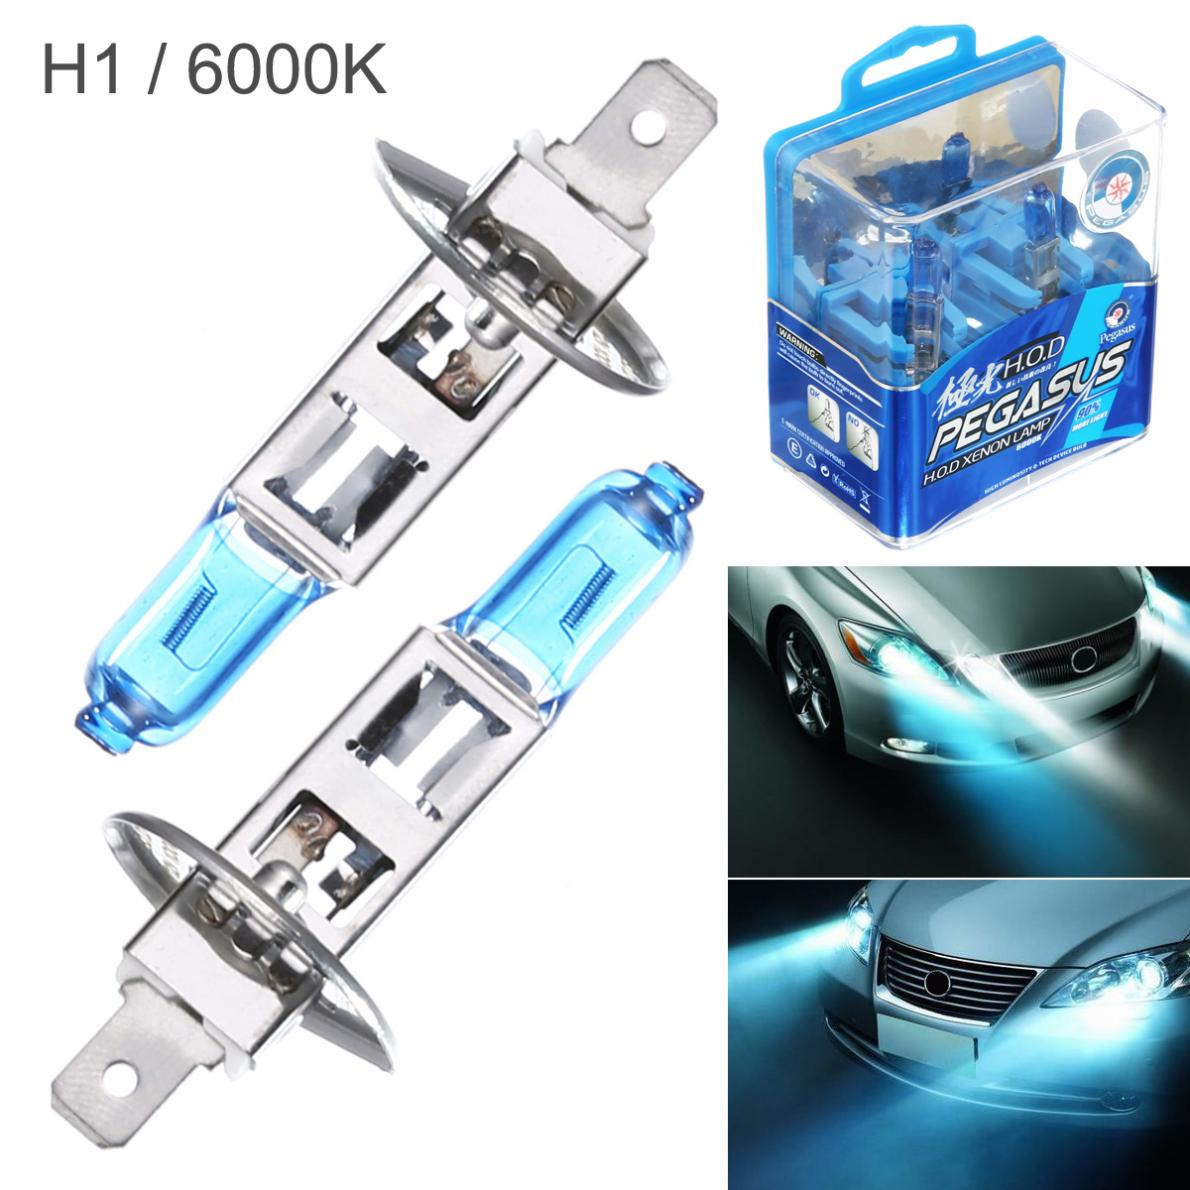 2pcs H1 H3 H4 9005 100W White Light Super Bright Car HOD Xenon Halogen Lamp Auto Front Headlight Fog Bulb блуза aurora firenze aurora firenze au008ewrqs57